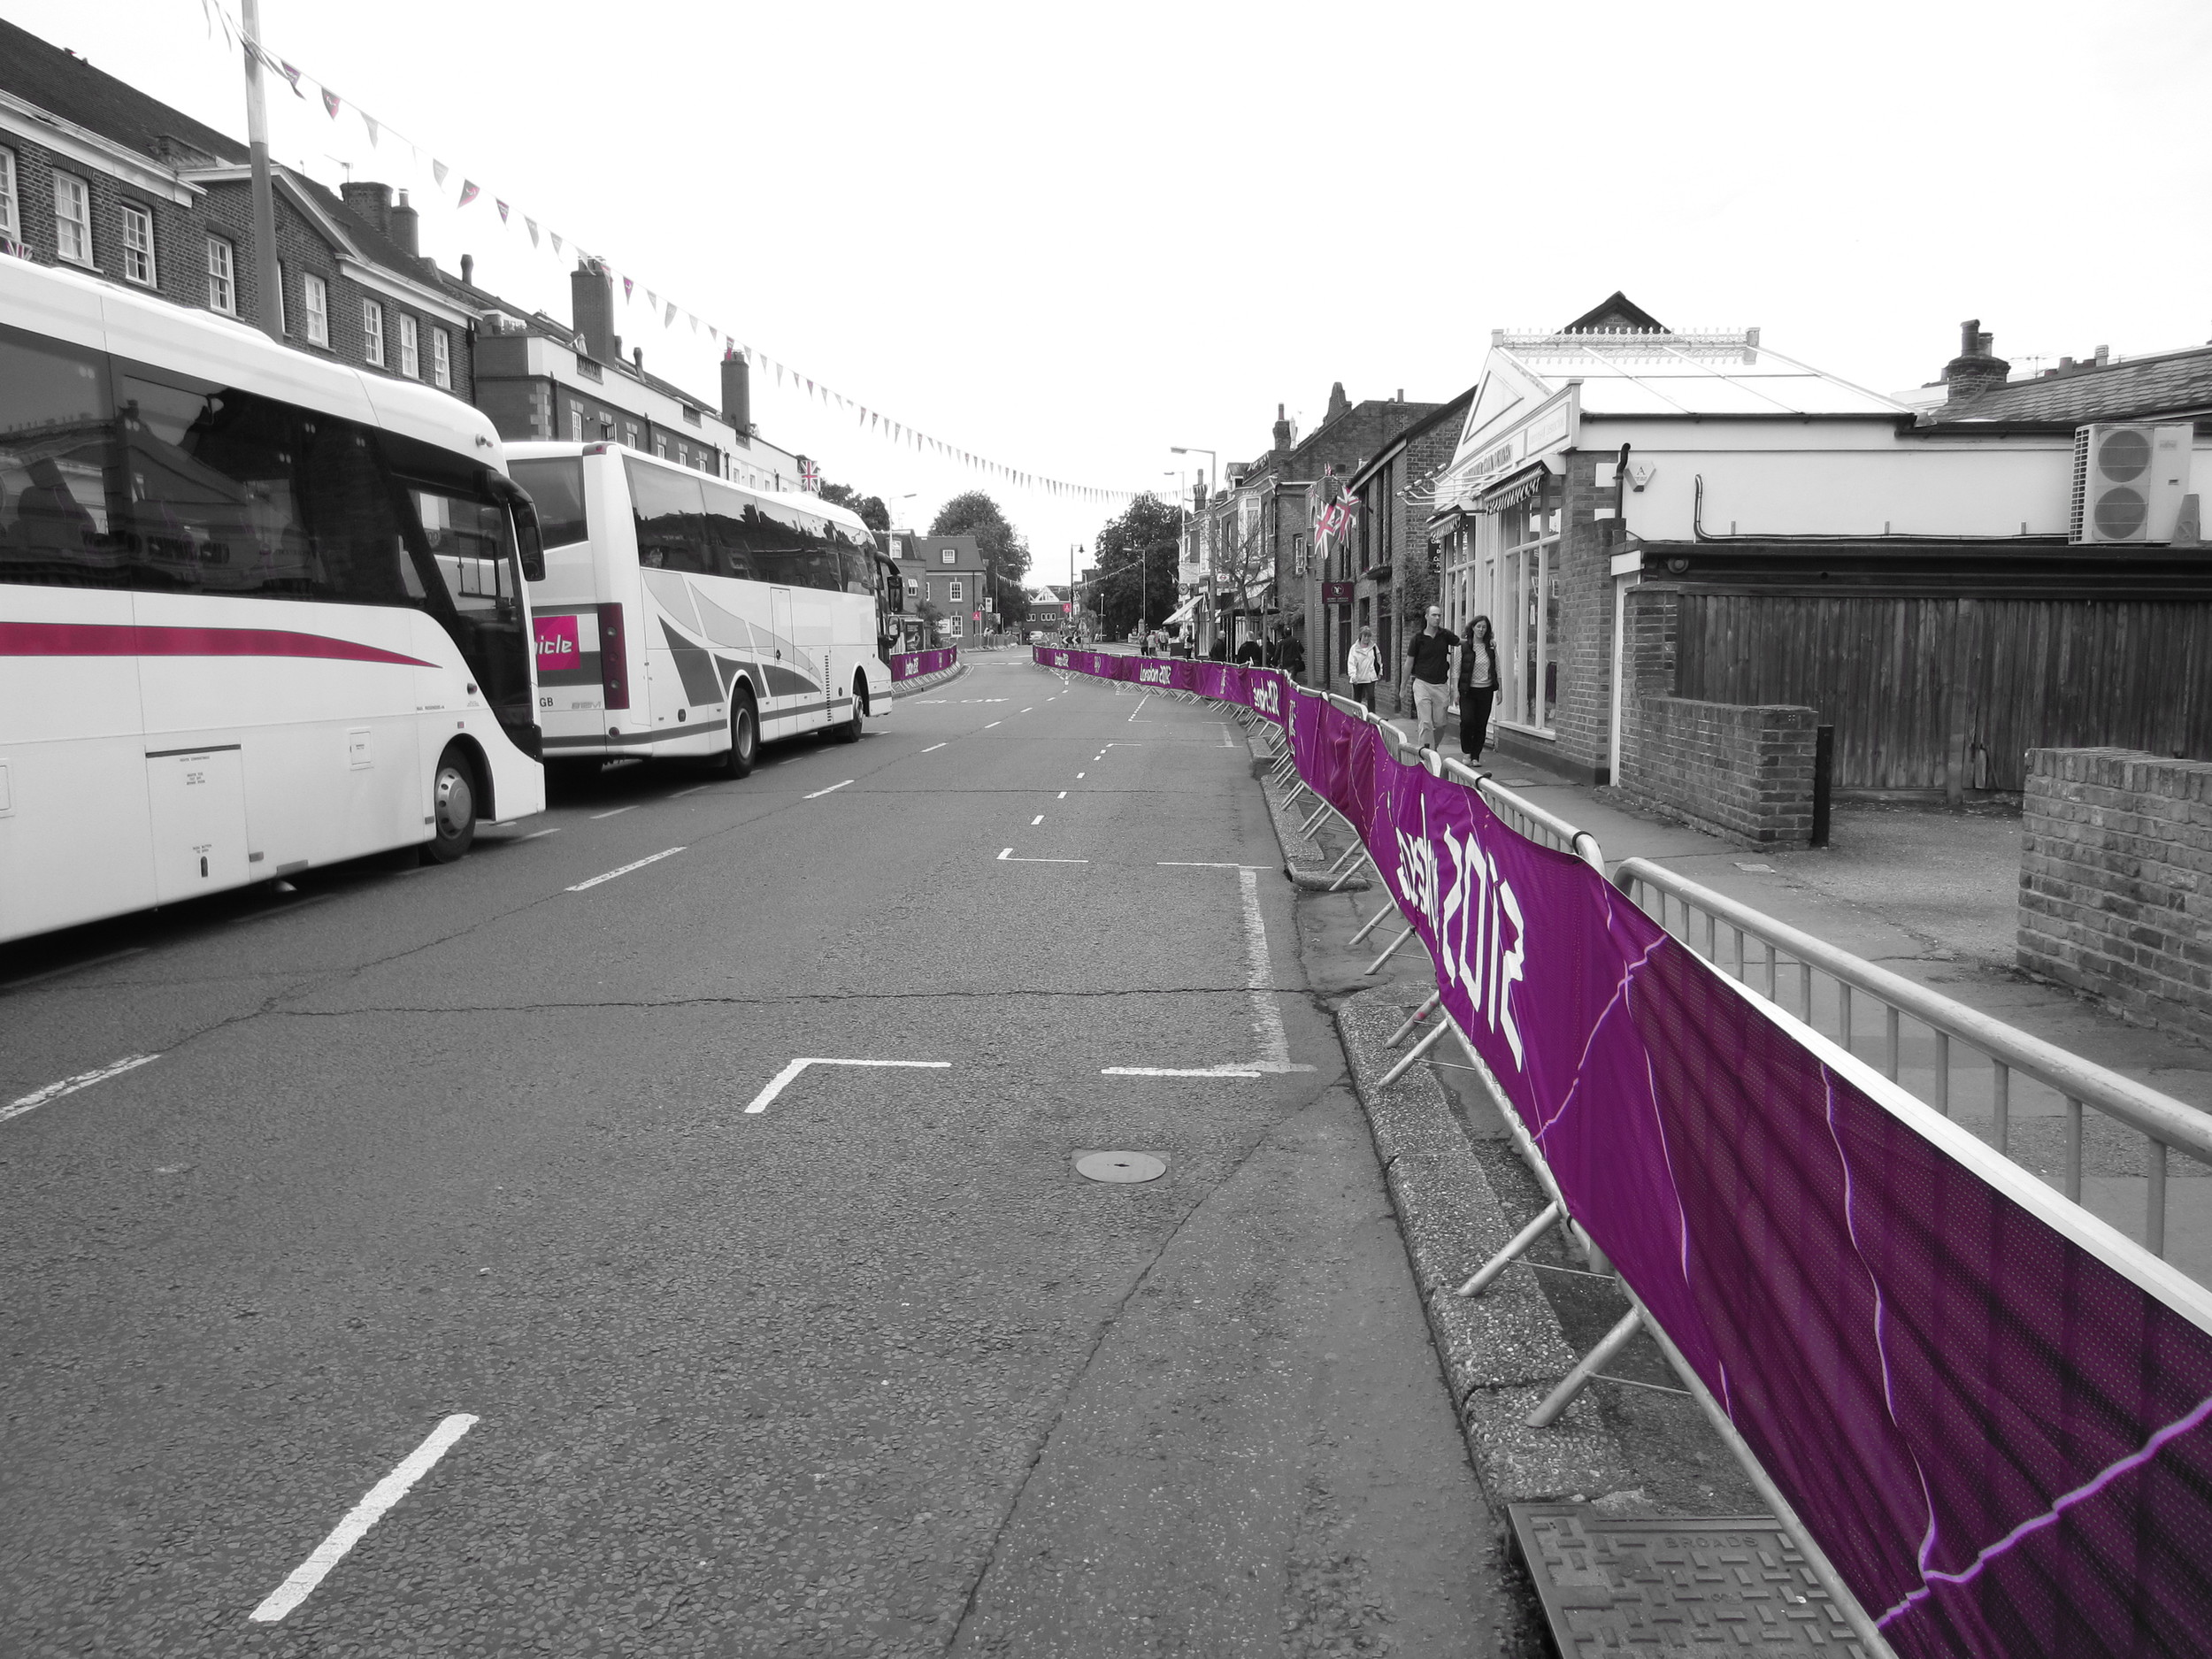 London 2012 - Road Events